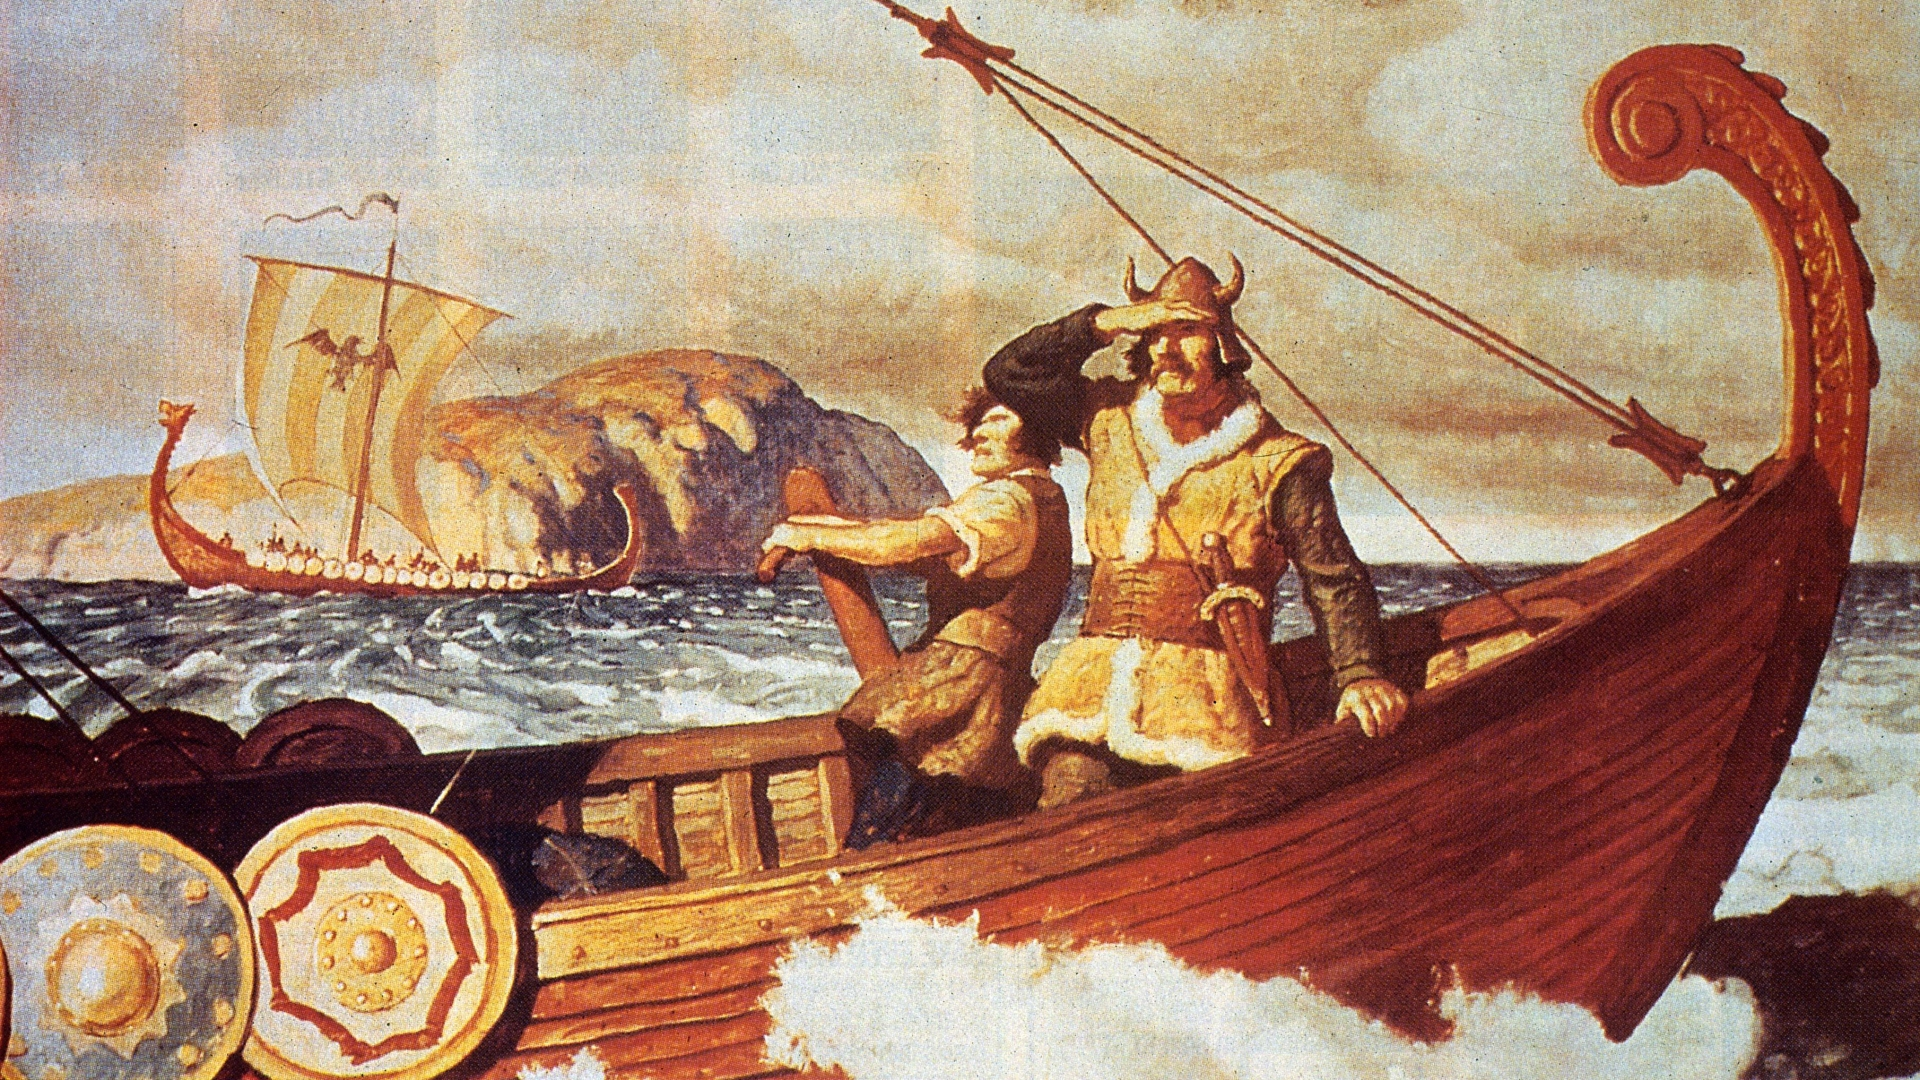 Viking sailors making the long voyage across the Atlantic between Europe and America. Painting by NC Wyeth. (Credit: Hulton Archive/Getty Images)